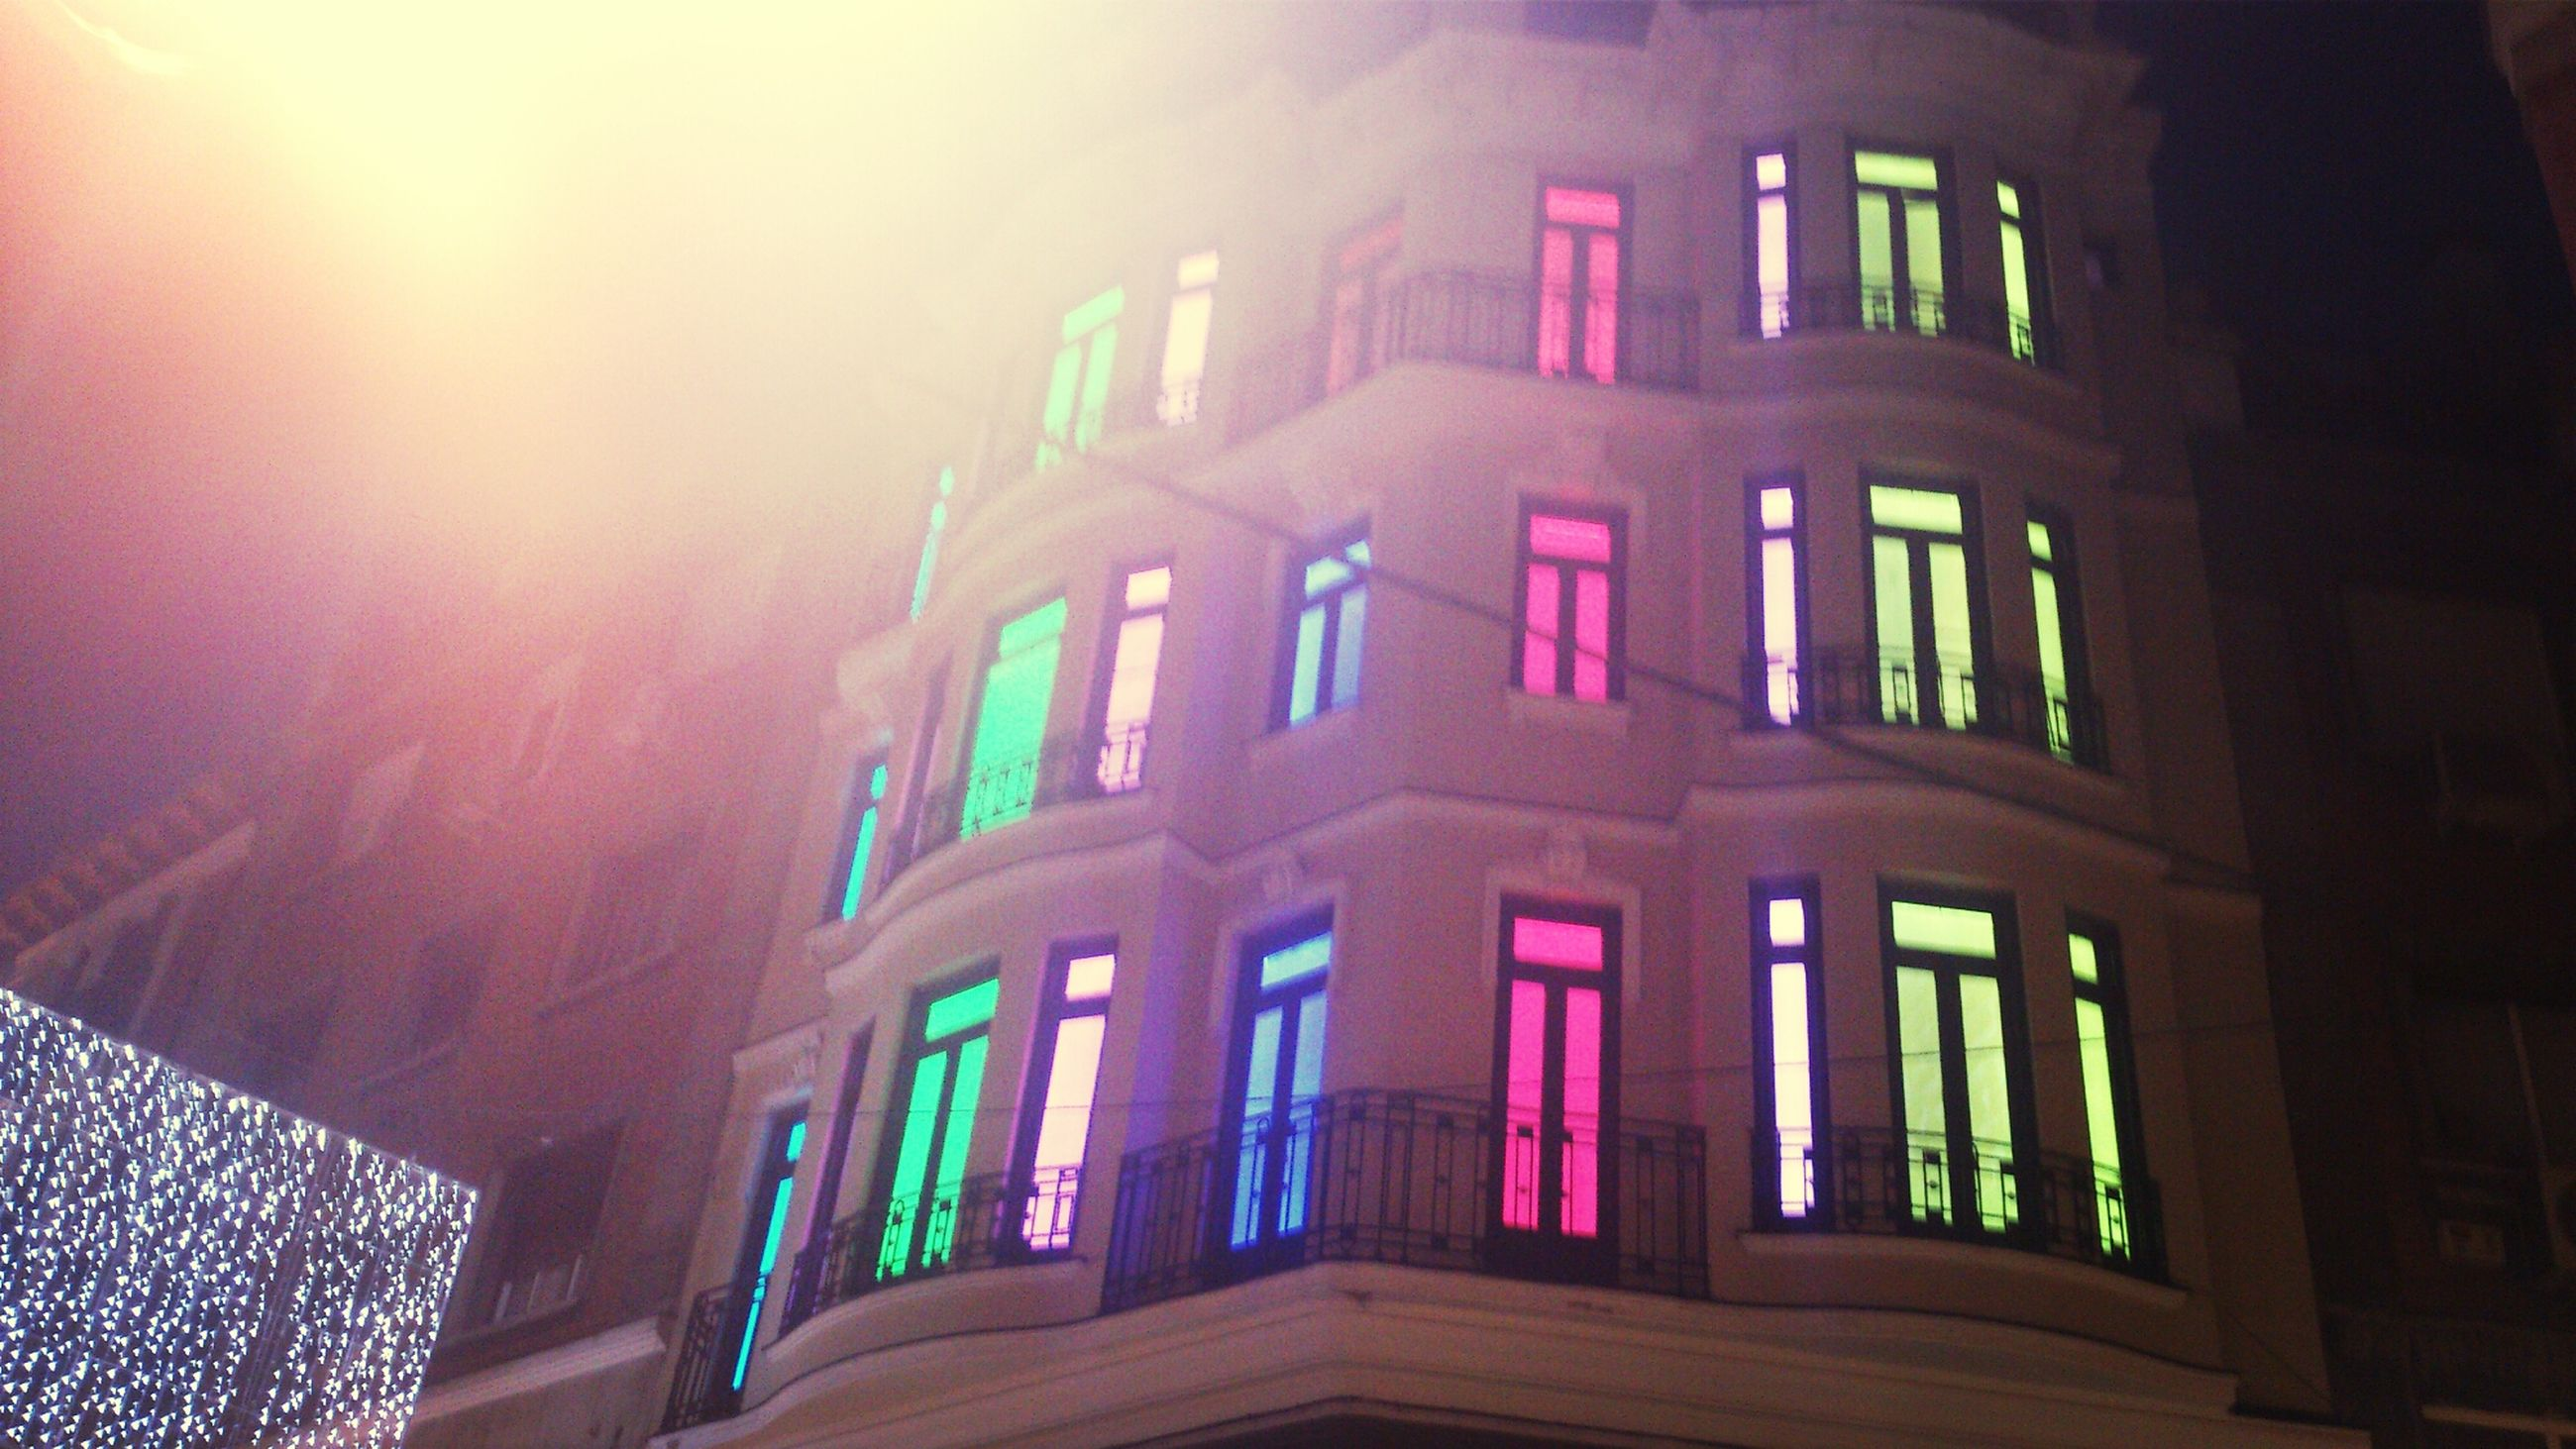 architecture, built structure, building exterior, low angle view, window, building, city, residential building, illuminated, sunlight, residential structure, no people, sky, night, outdoors, railing, arch, glass - material, facade